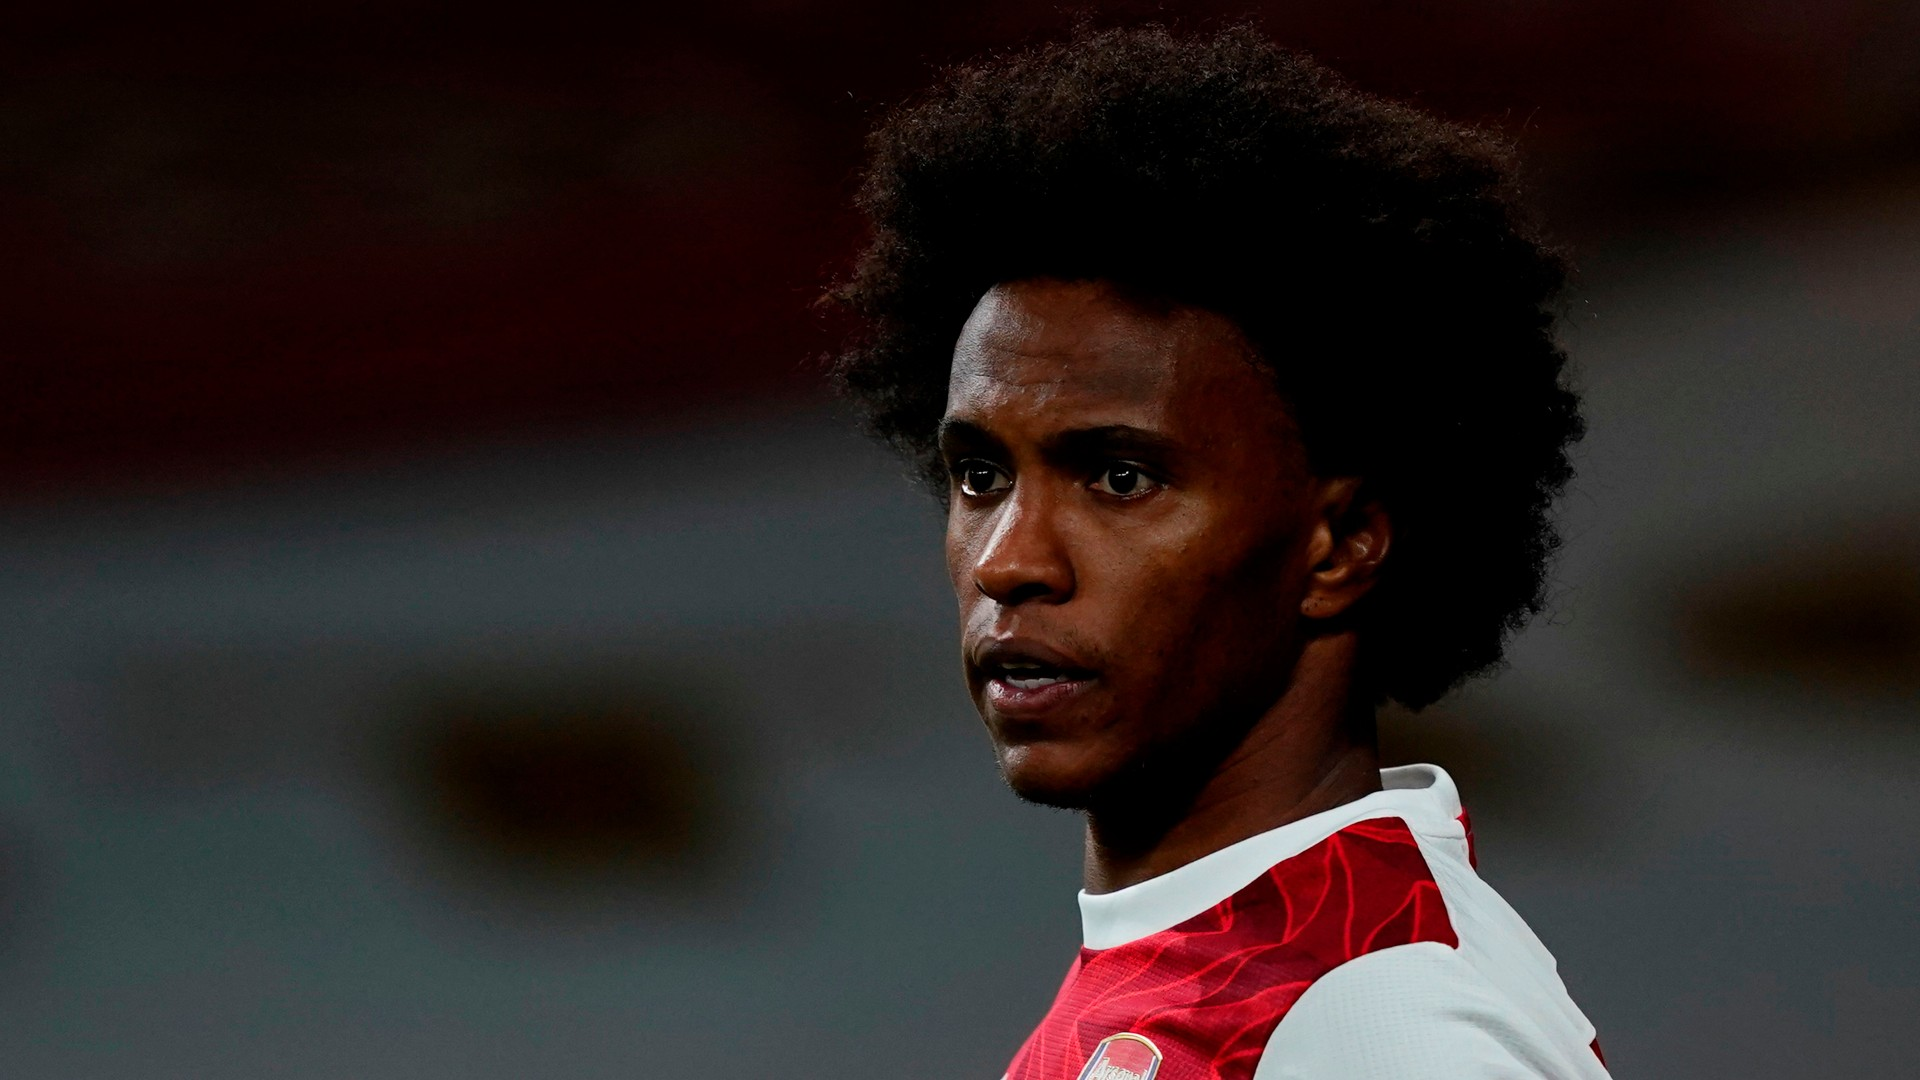 'Willian a lazy signing that Wenger would've avoided' – Adams slams Arsenal's recruitment